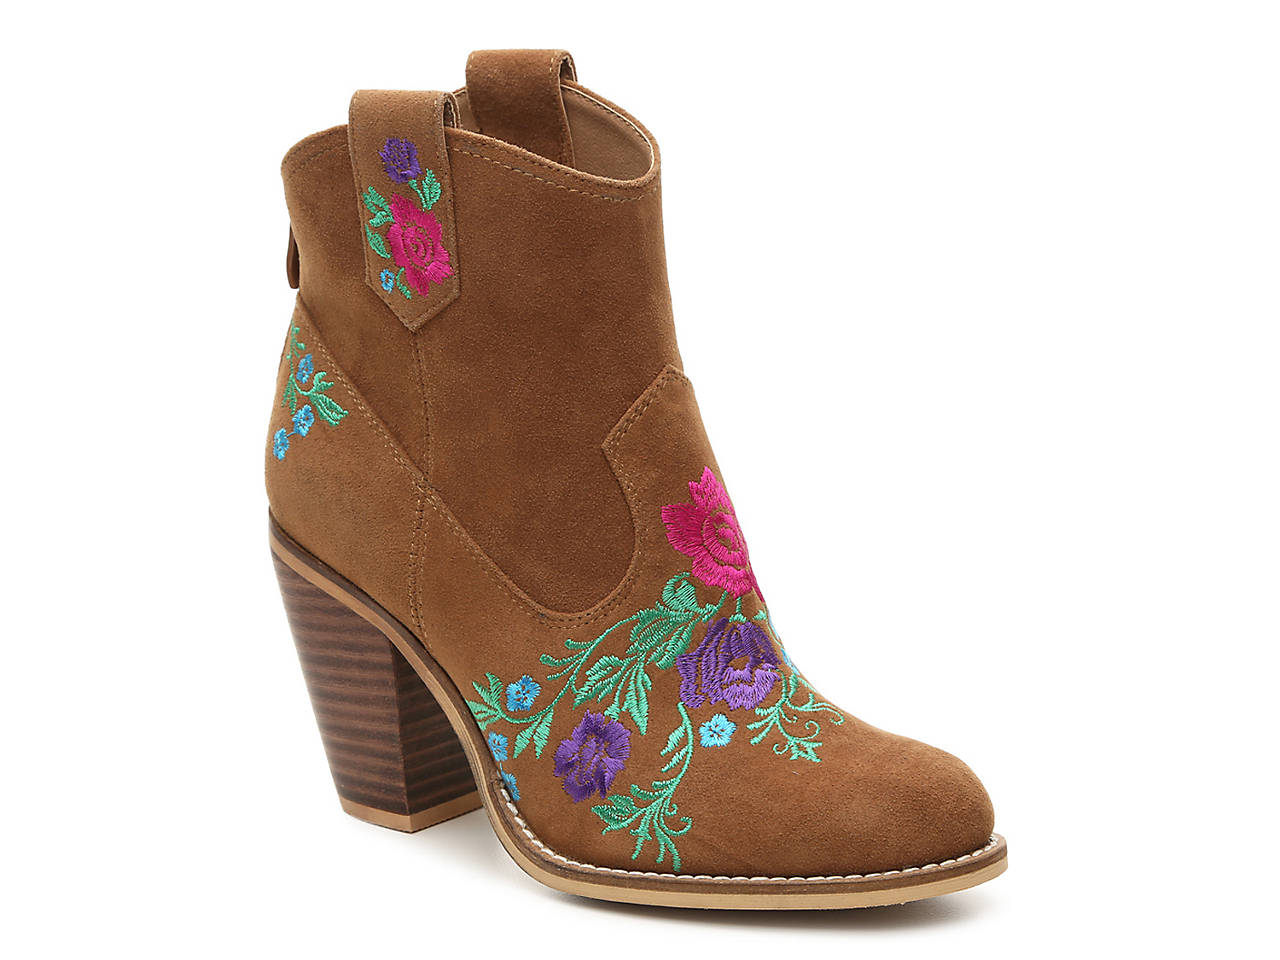 Embroidered Western Bootie Rebels Bootie Sherry Sherry Rebels Western Embroidered Western Sherry Rebels Embroidered 3jL5qcAR4S